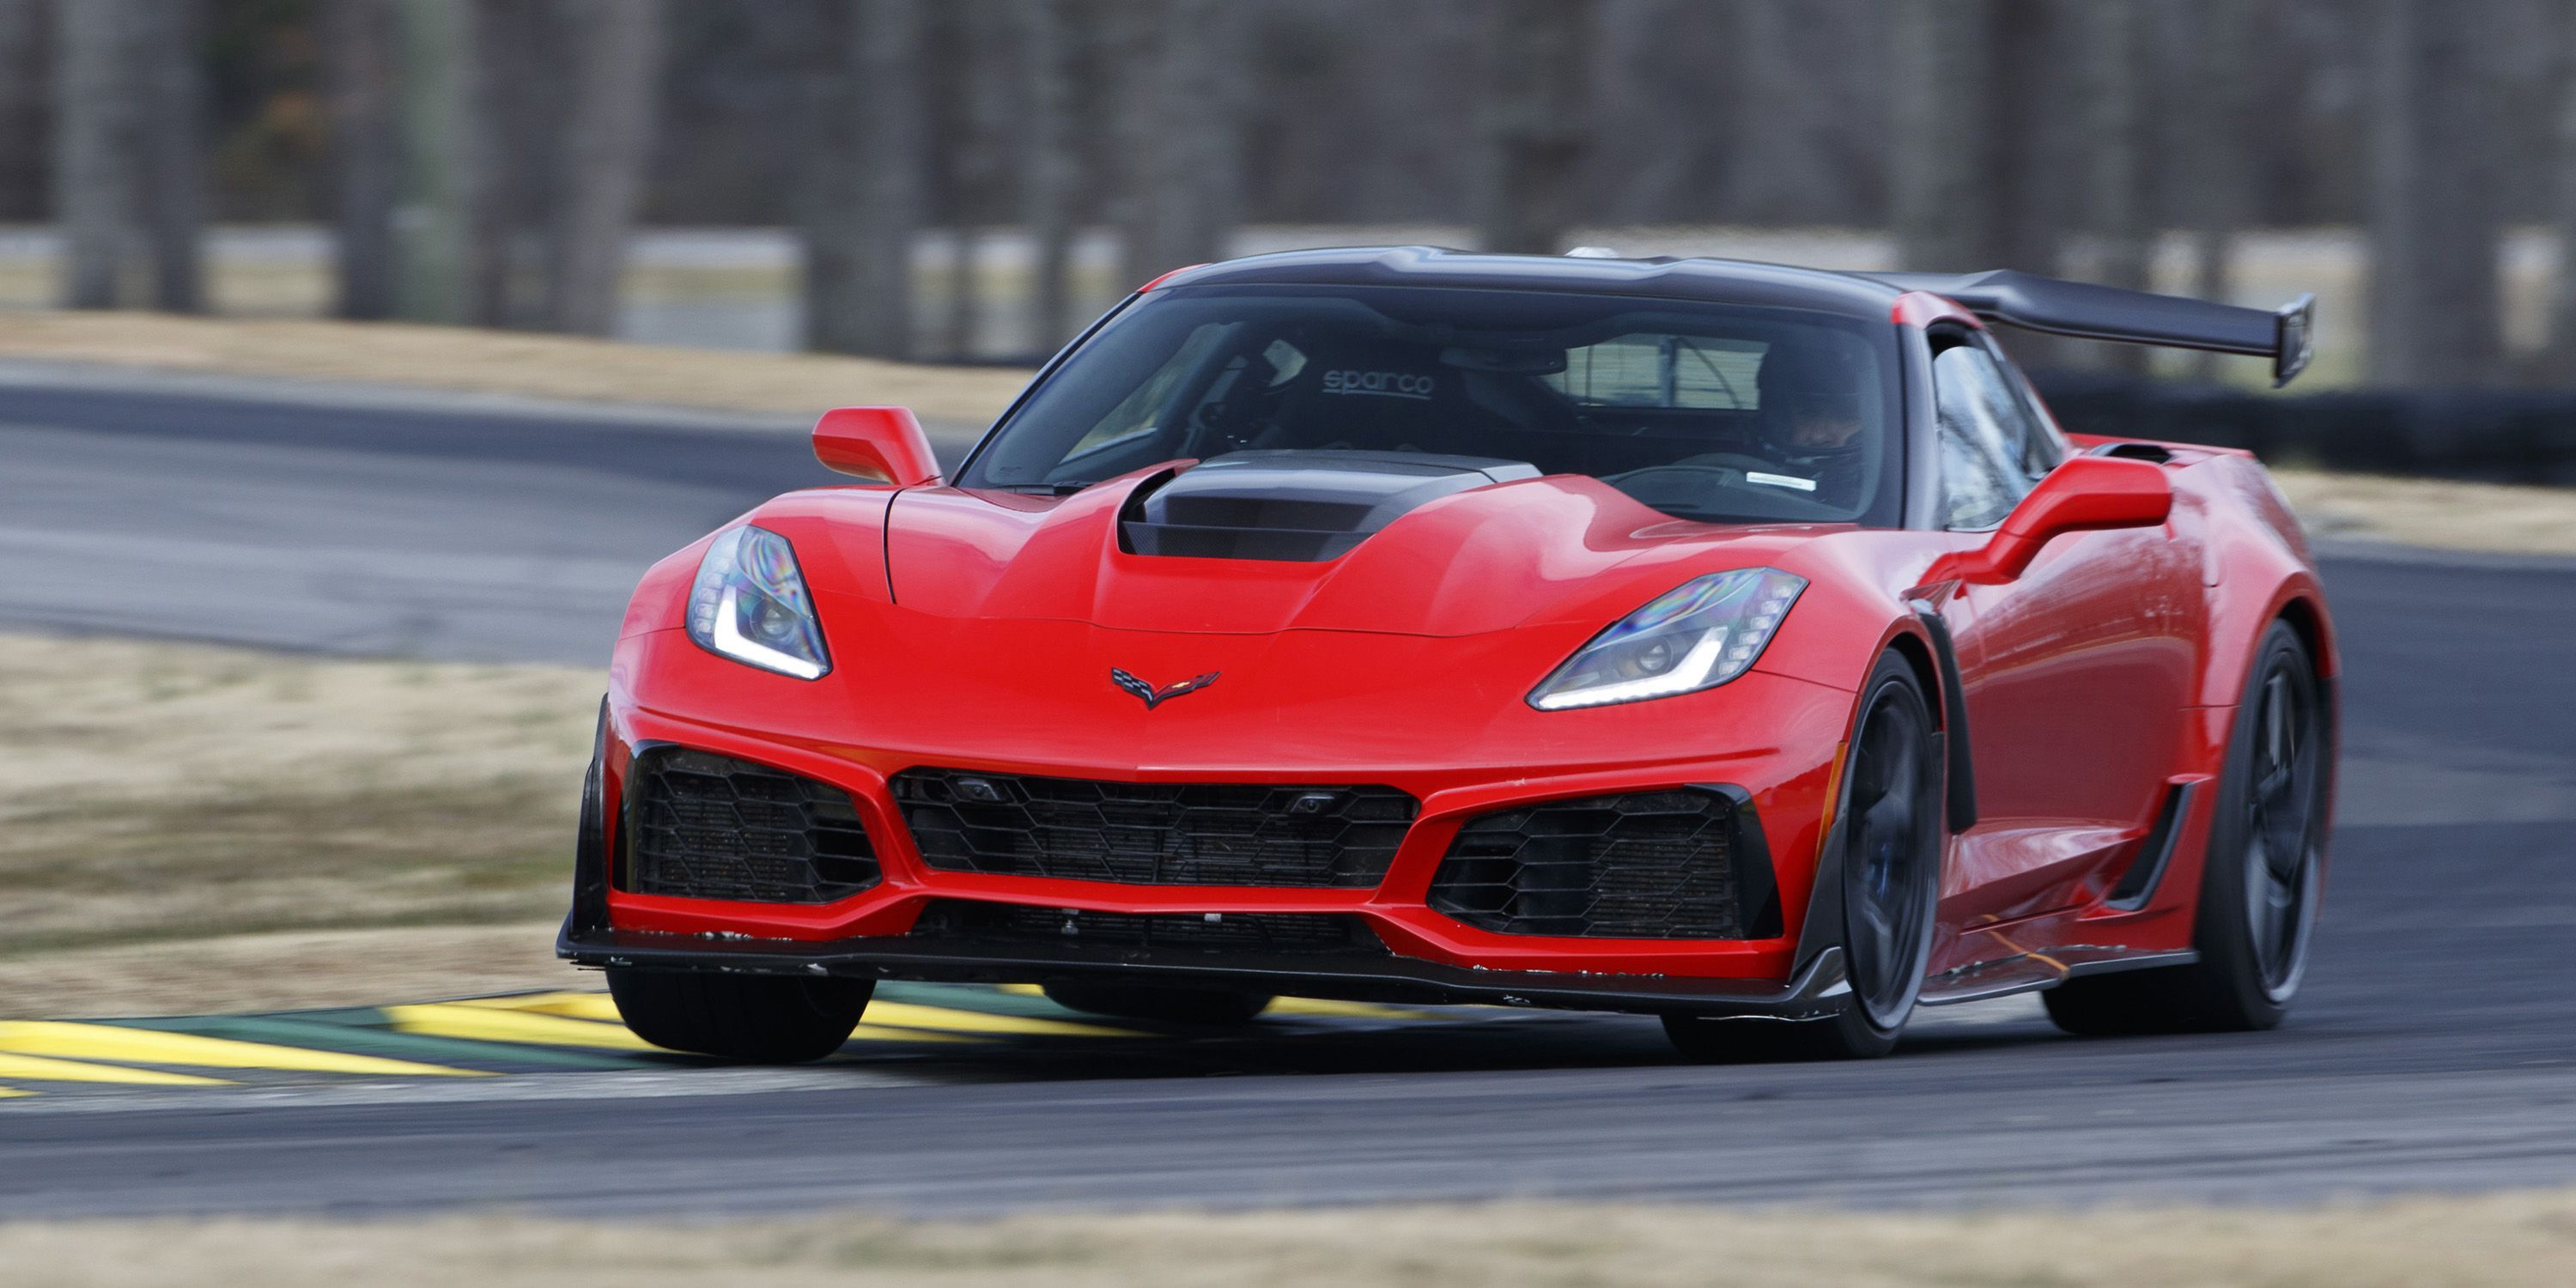 2019 Corvette Zr1 Does 0 60 In 2 85 Seconds 100 Six Flat